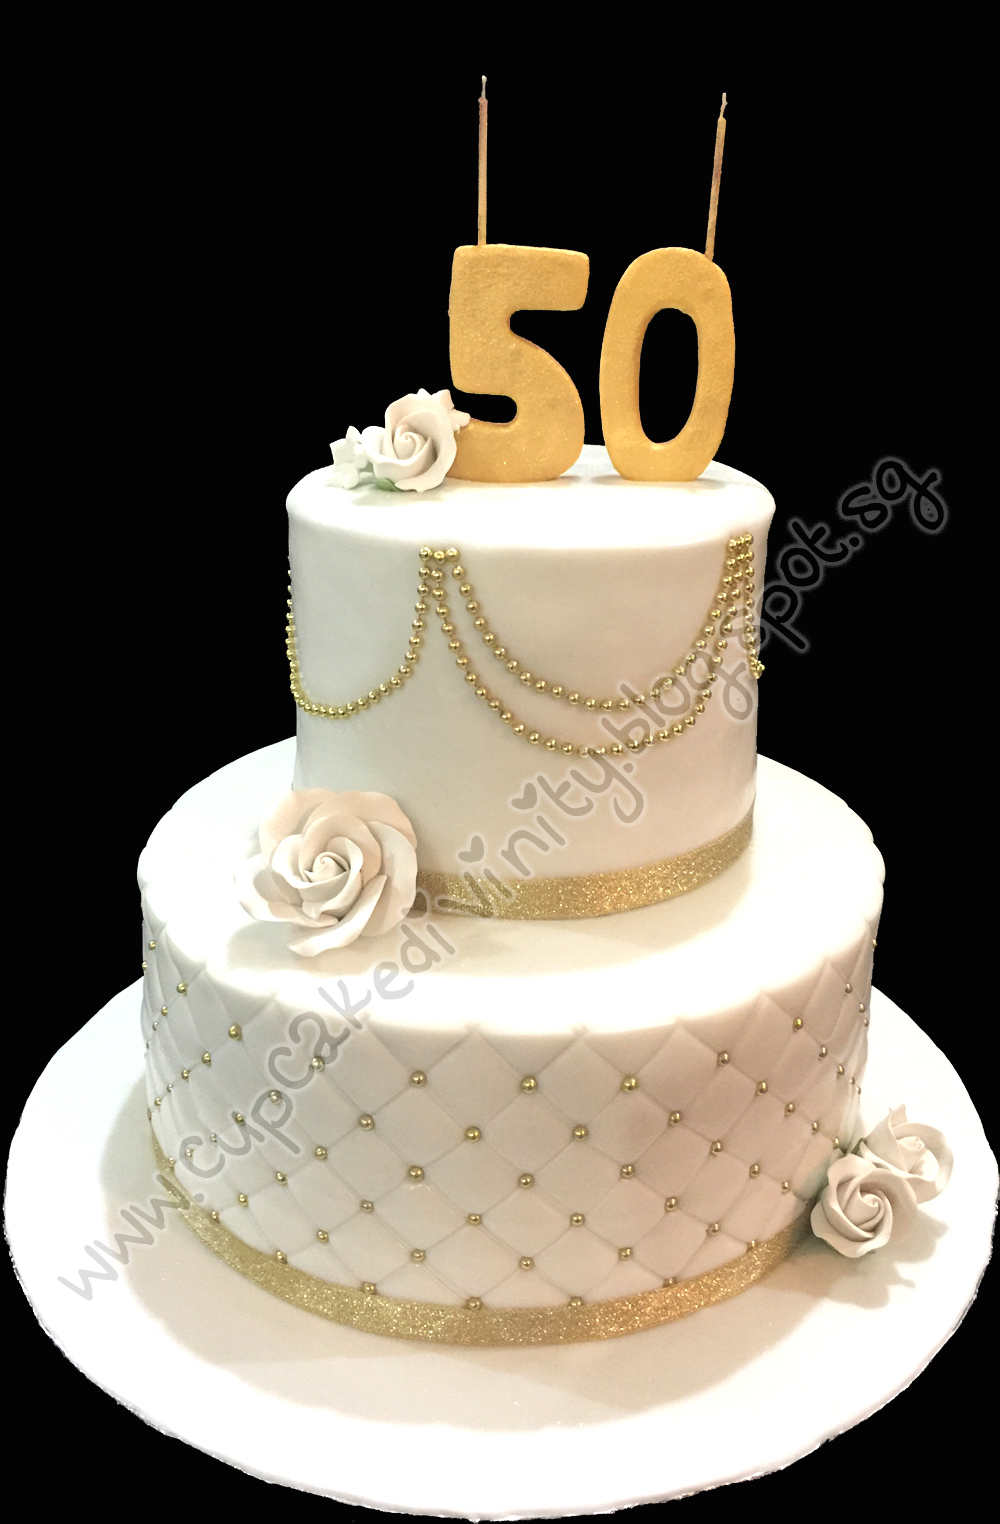 Customised 2 Tier Gold And White Theme 50th Birthday Cake